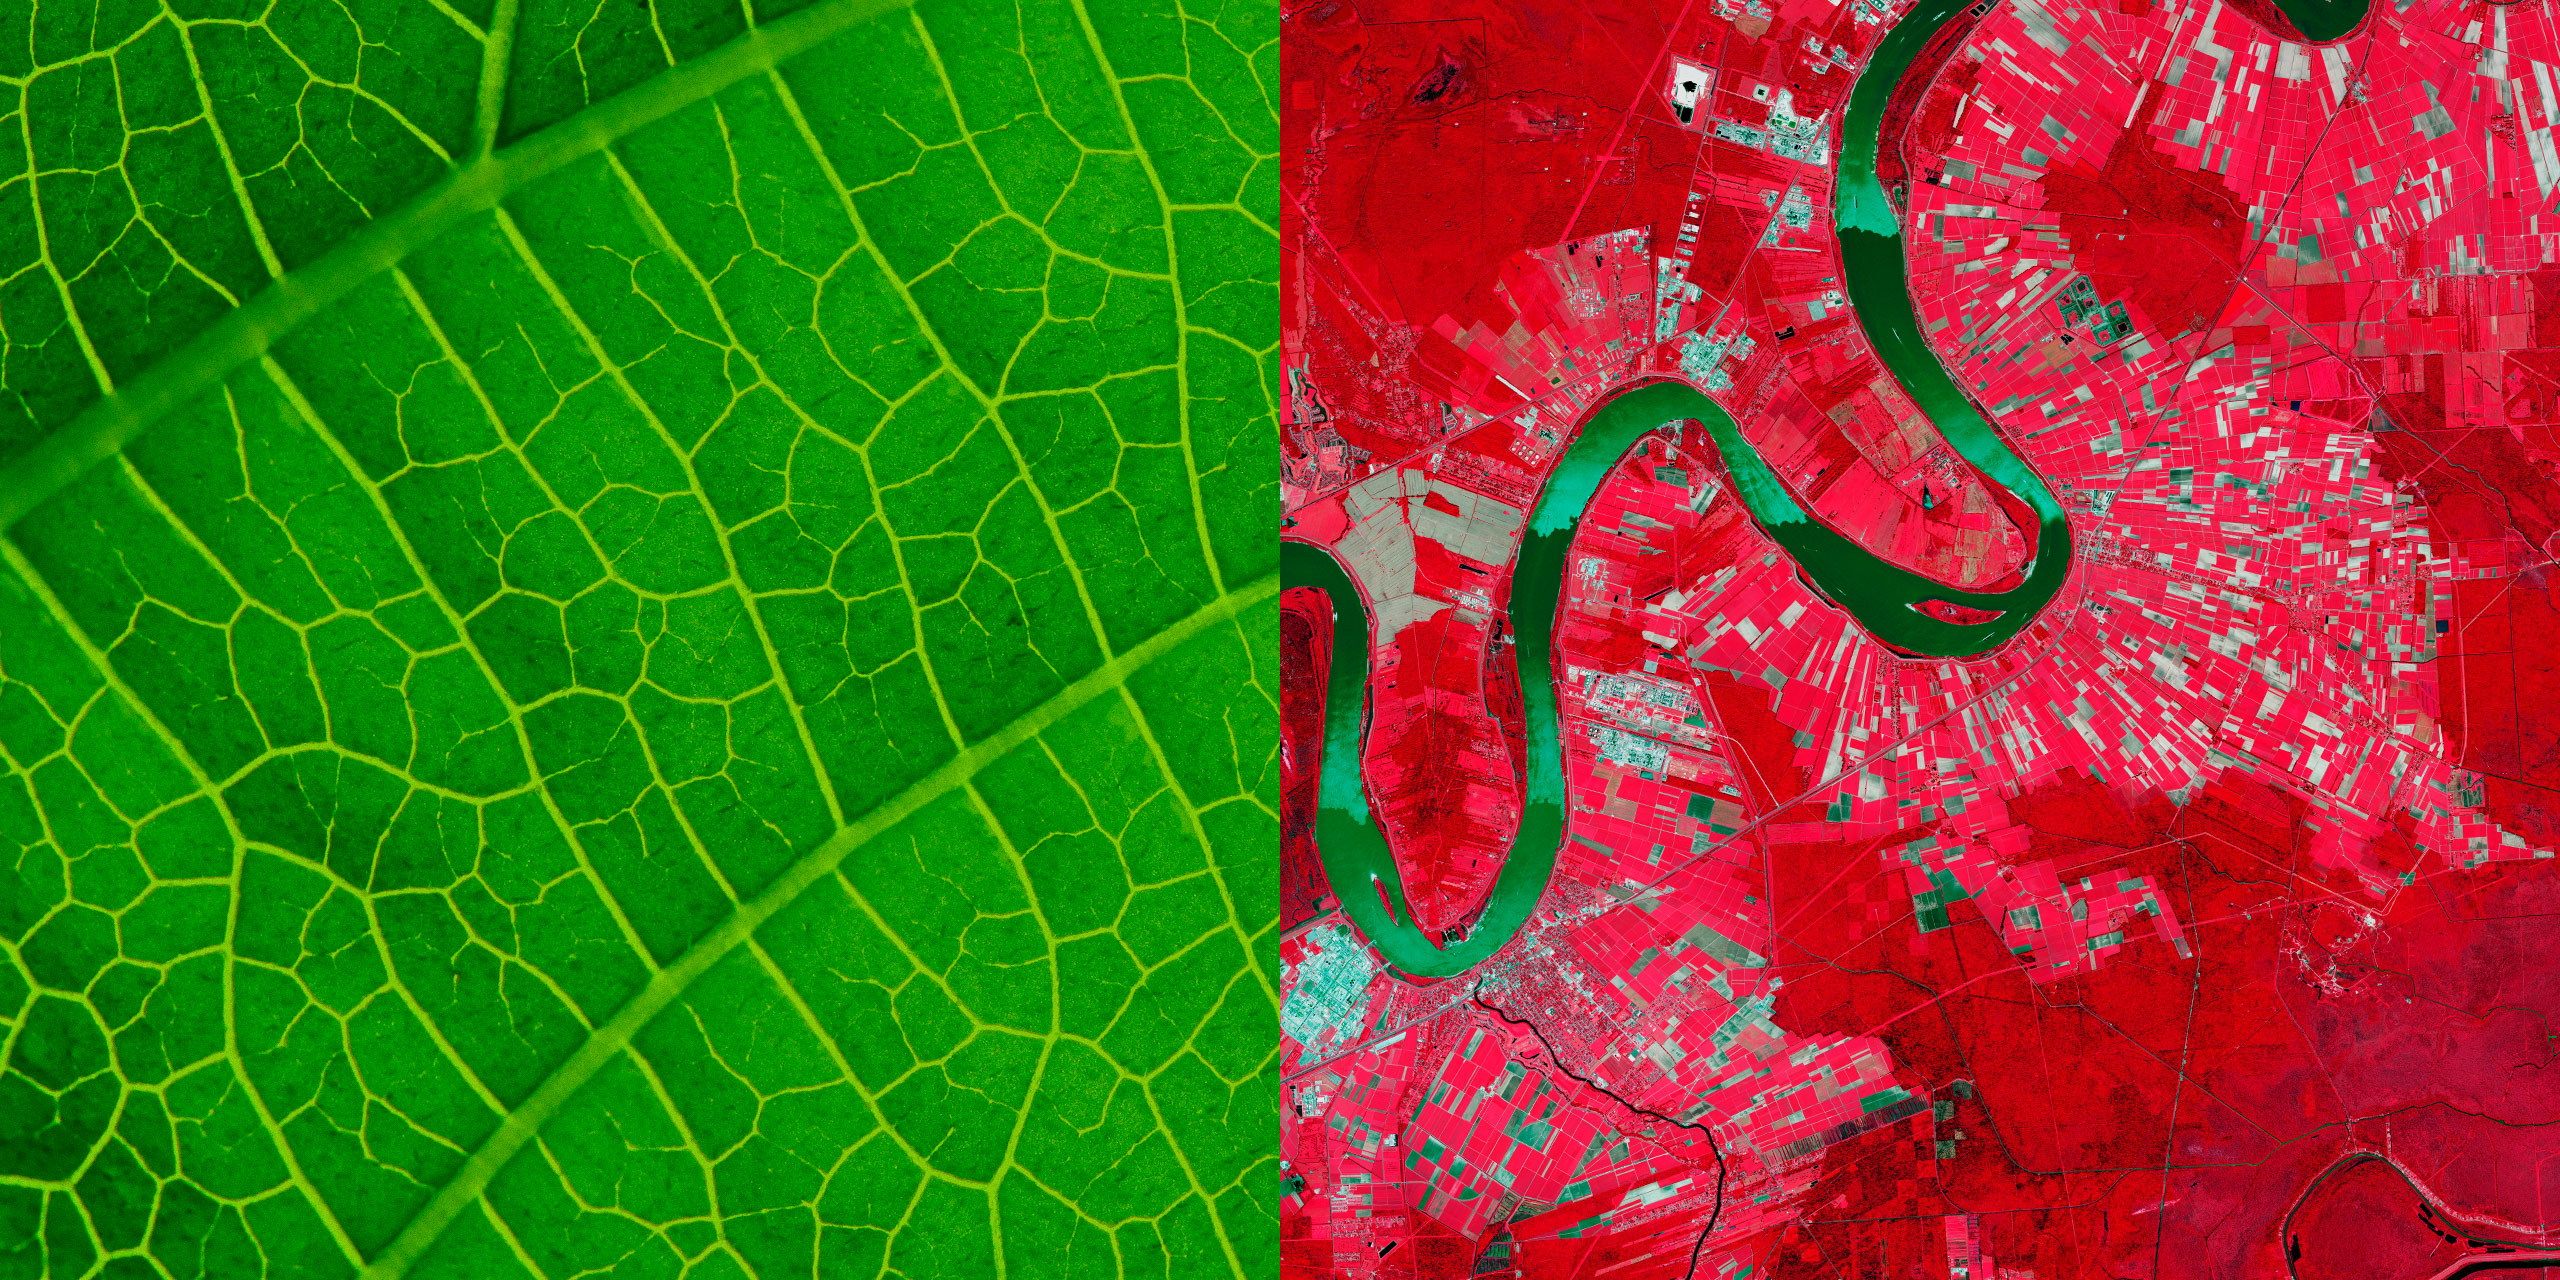 An infrared rendering of a map shows land use patterns and differentiates between areas of vegetation and urbanization